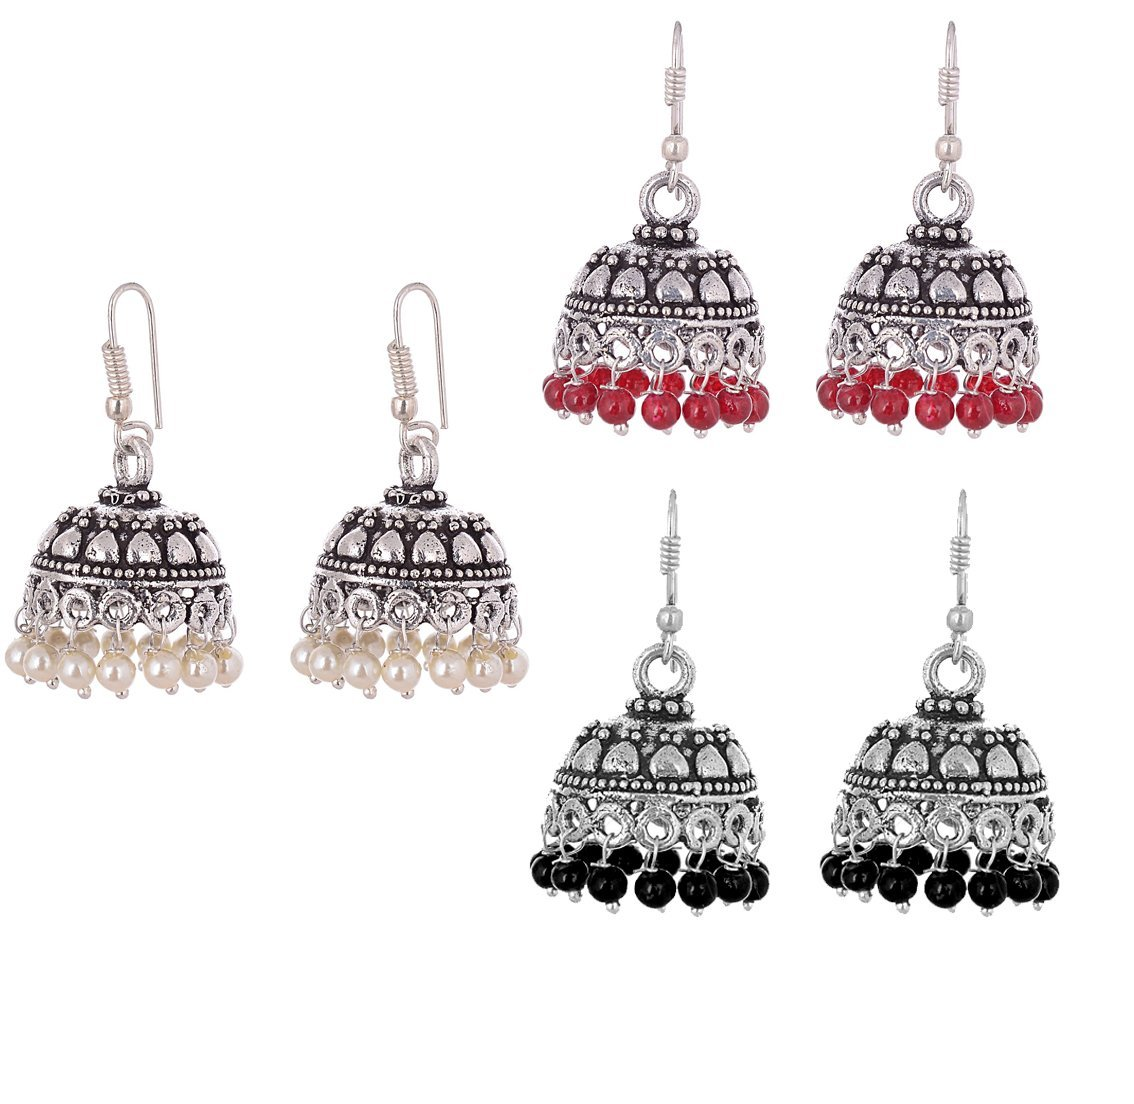 The Trendy Trendz Oxidized Silver Indian Jhumka/Jhumki Jewelry Earrings Combo for Women and Girls